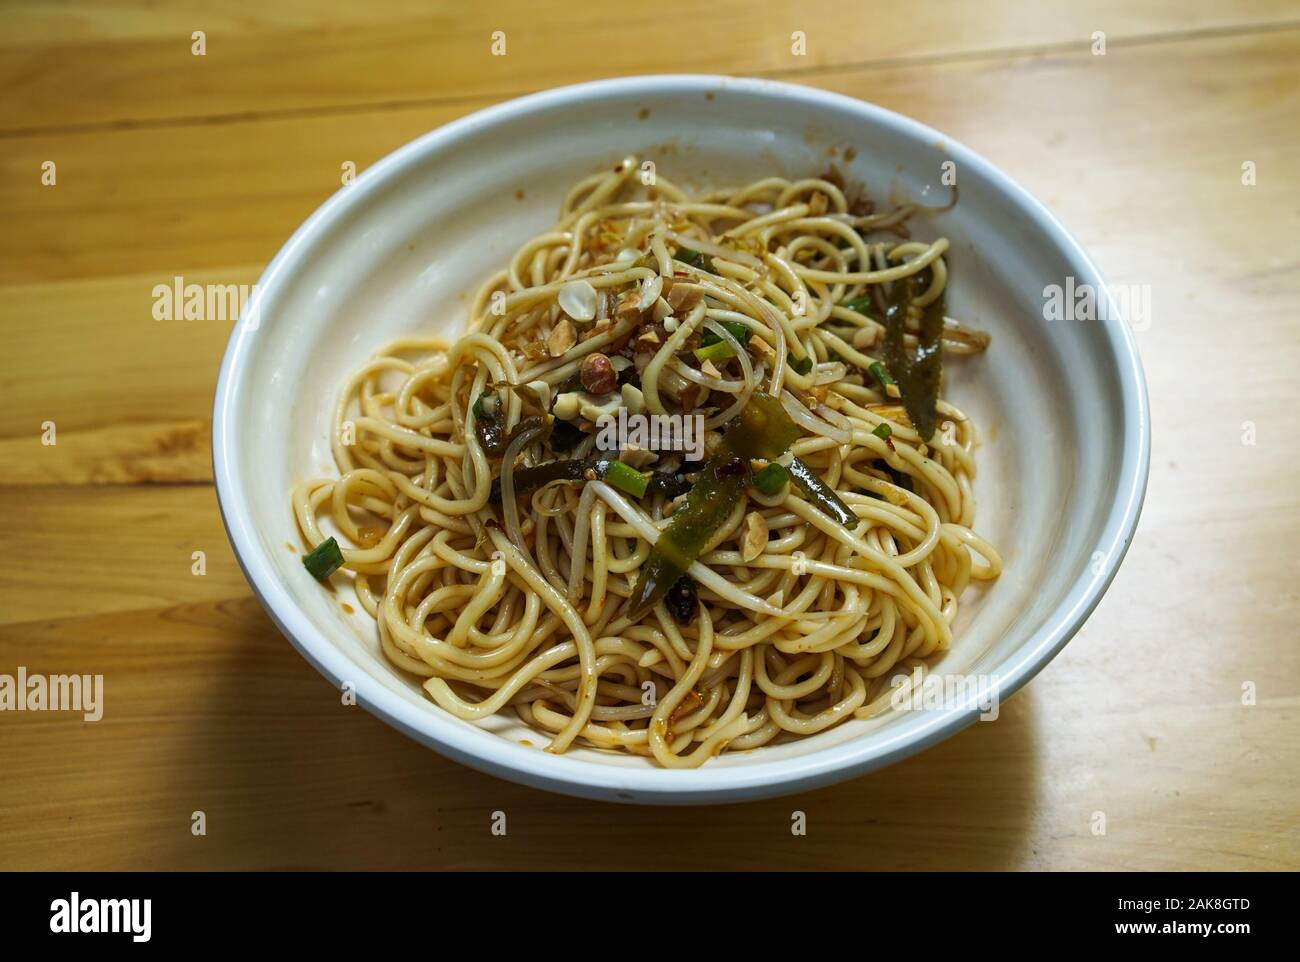 Dan Dan noodle, a spicy Szechuan cuisine dish commonly found in chinese street food. Stock Photo